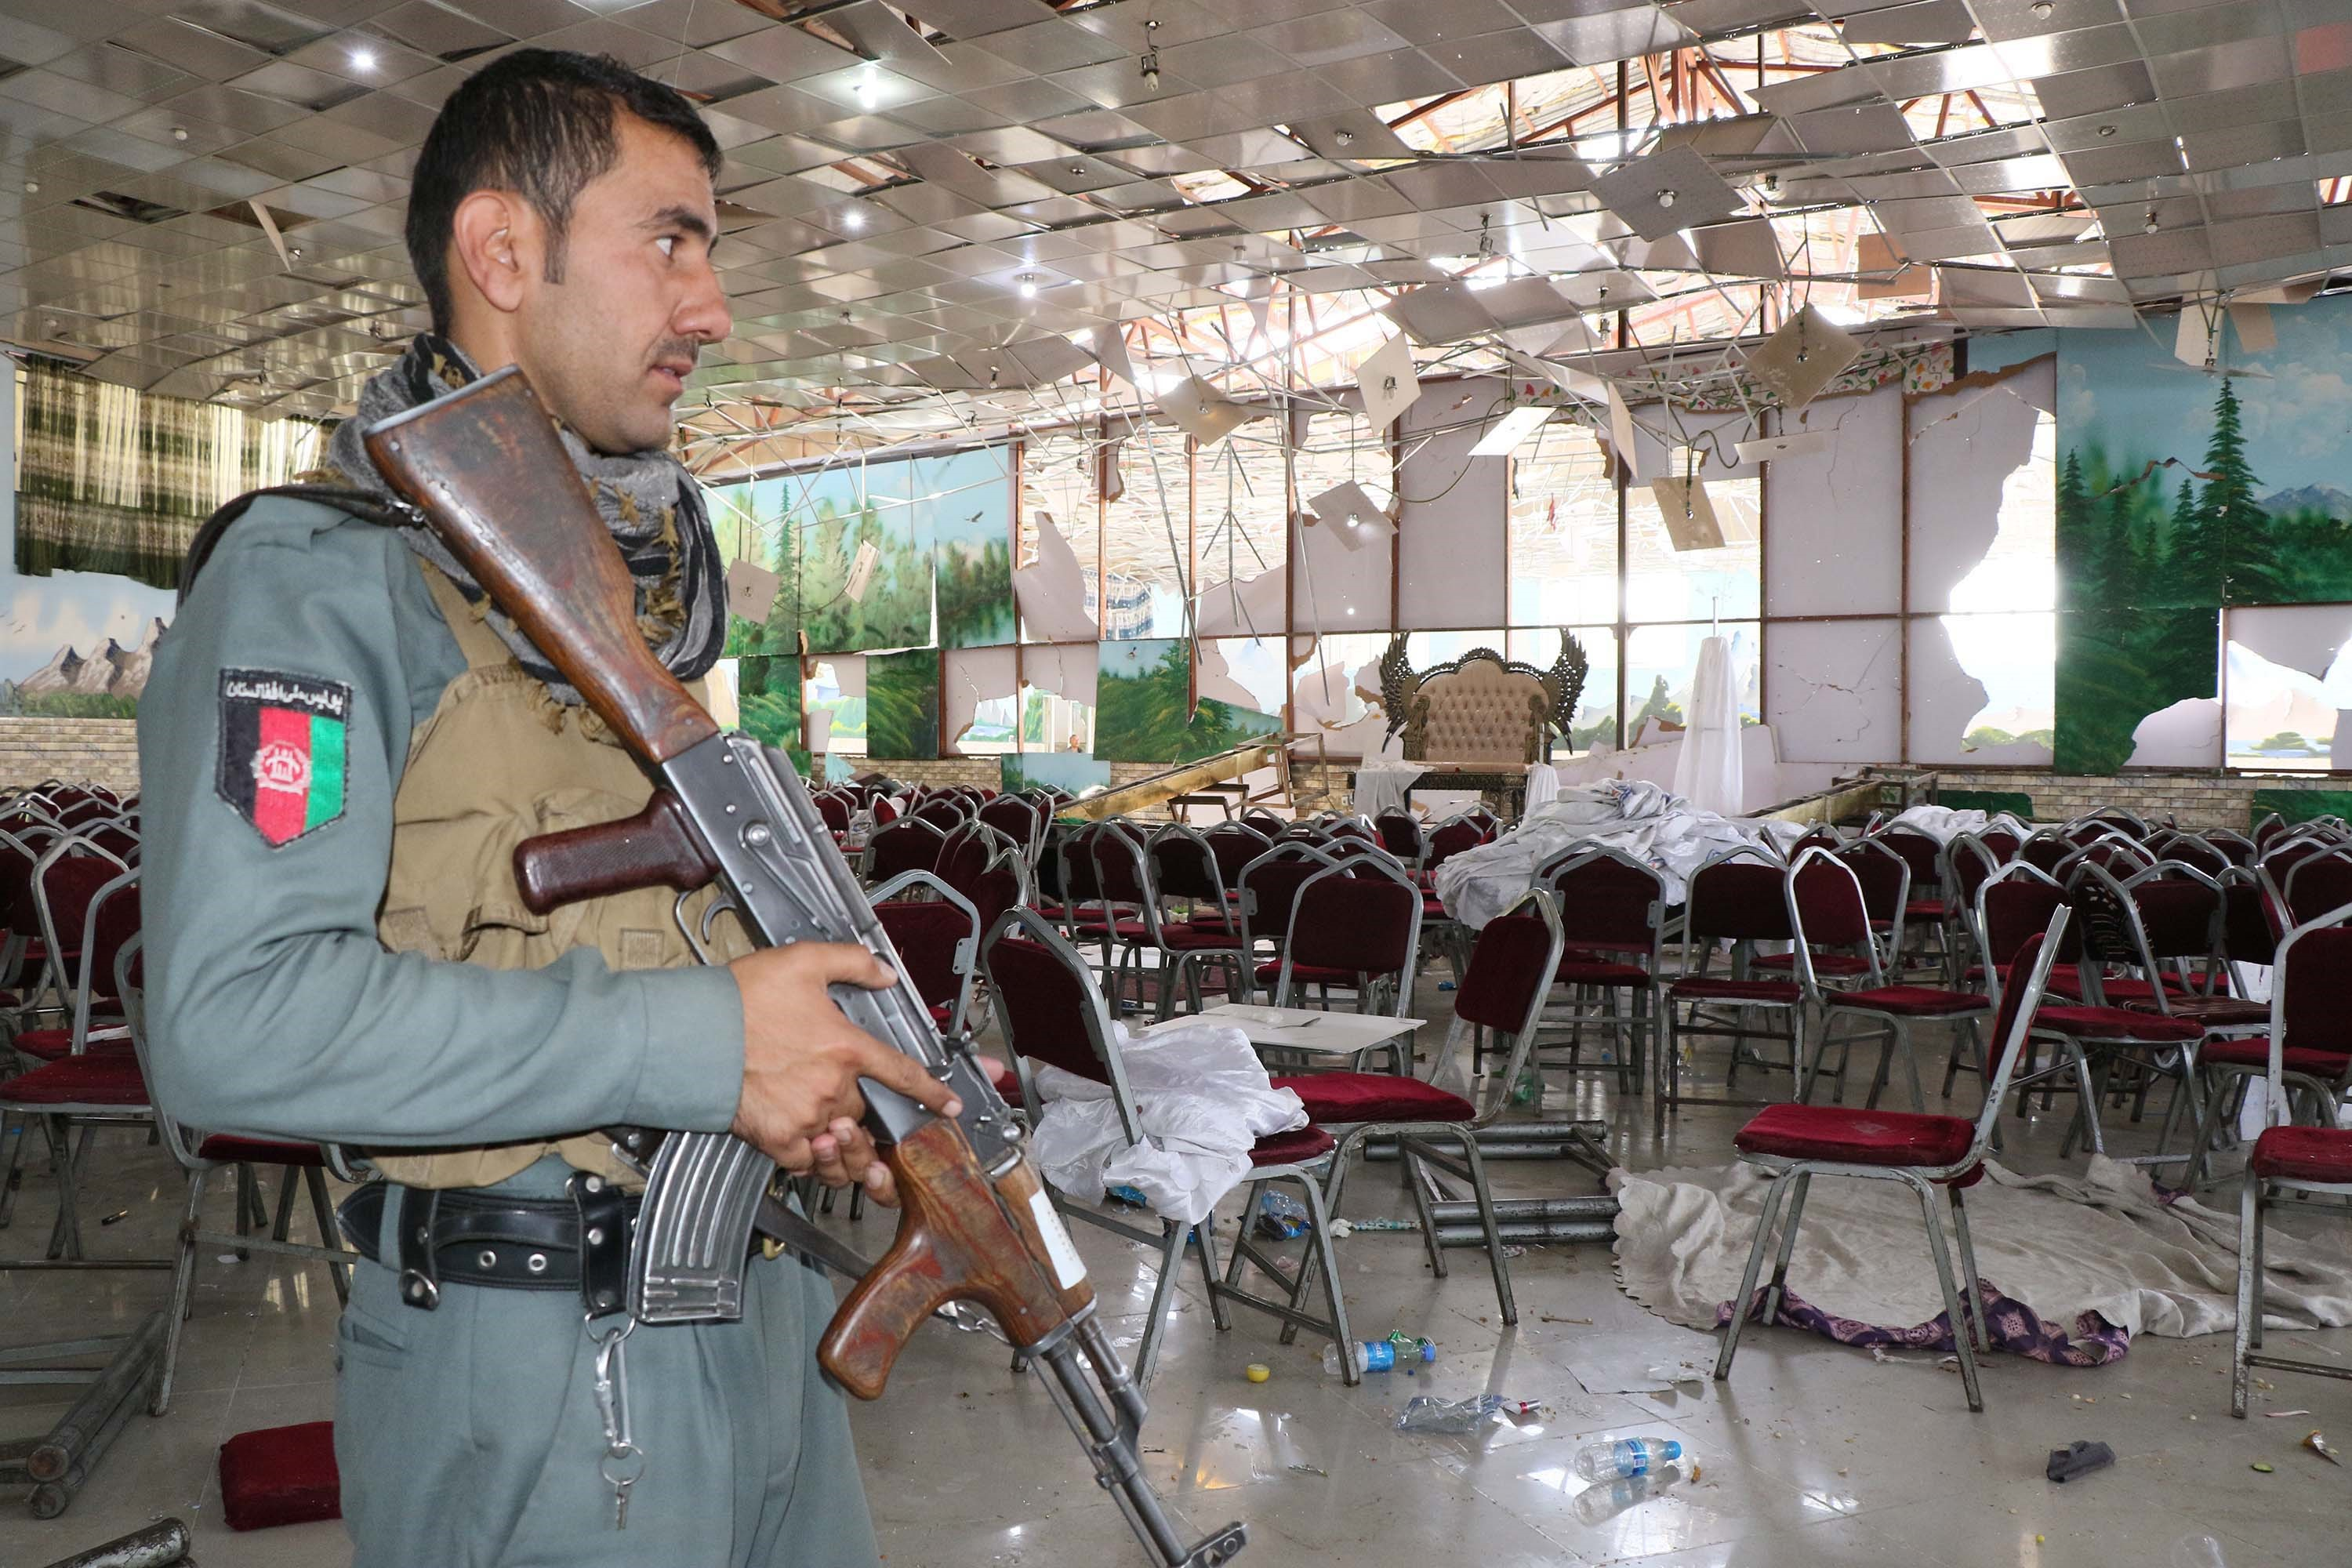 A uniformed security officer holds his rifle as he looks at a debris-filled hall with scattered chairs and a collapsing ceiling.